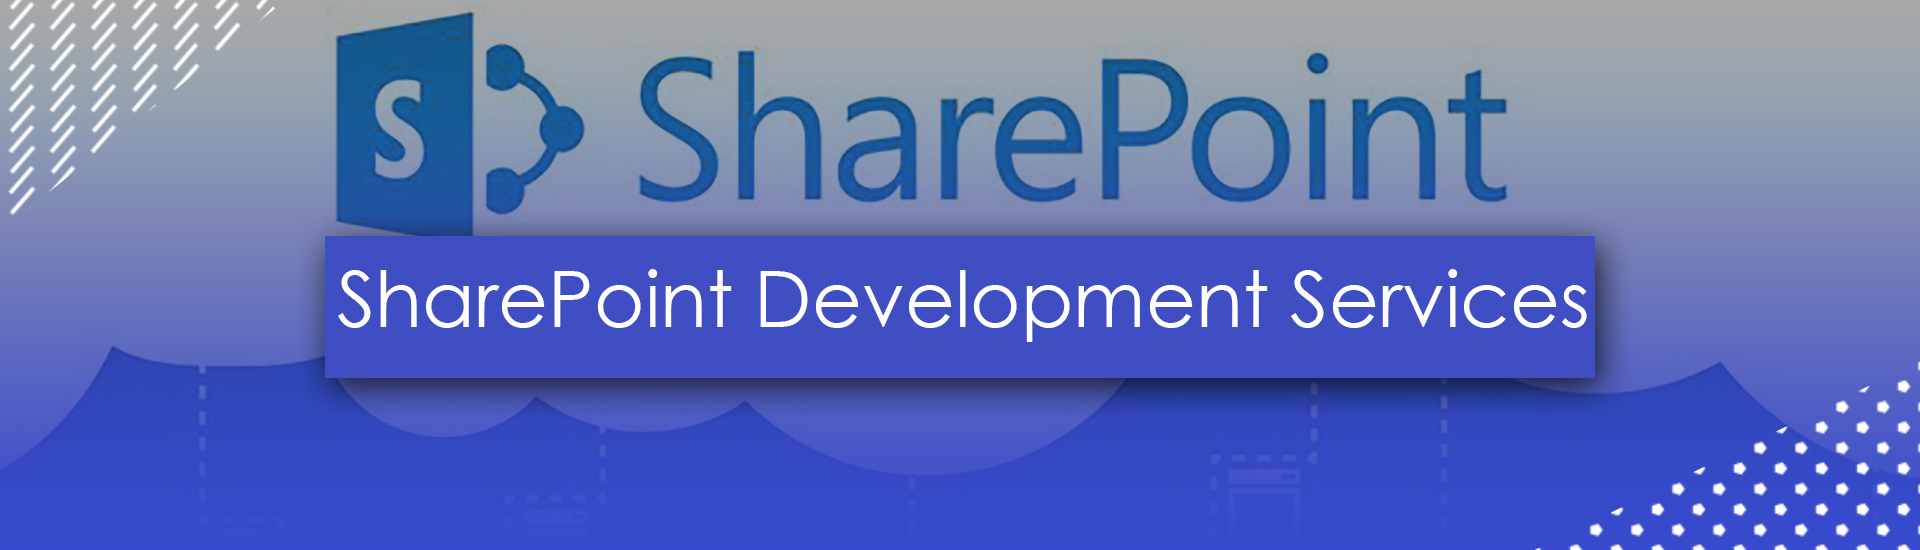 SharePoint Administration and Development Services in Pakistan